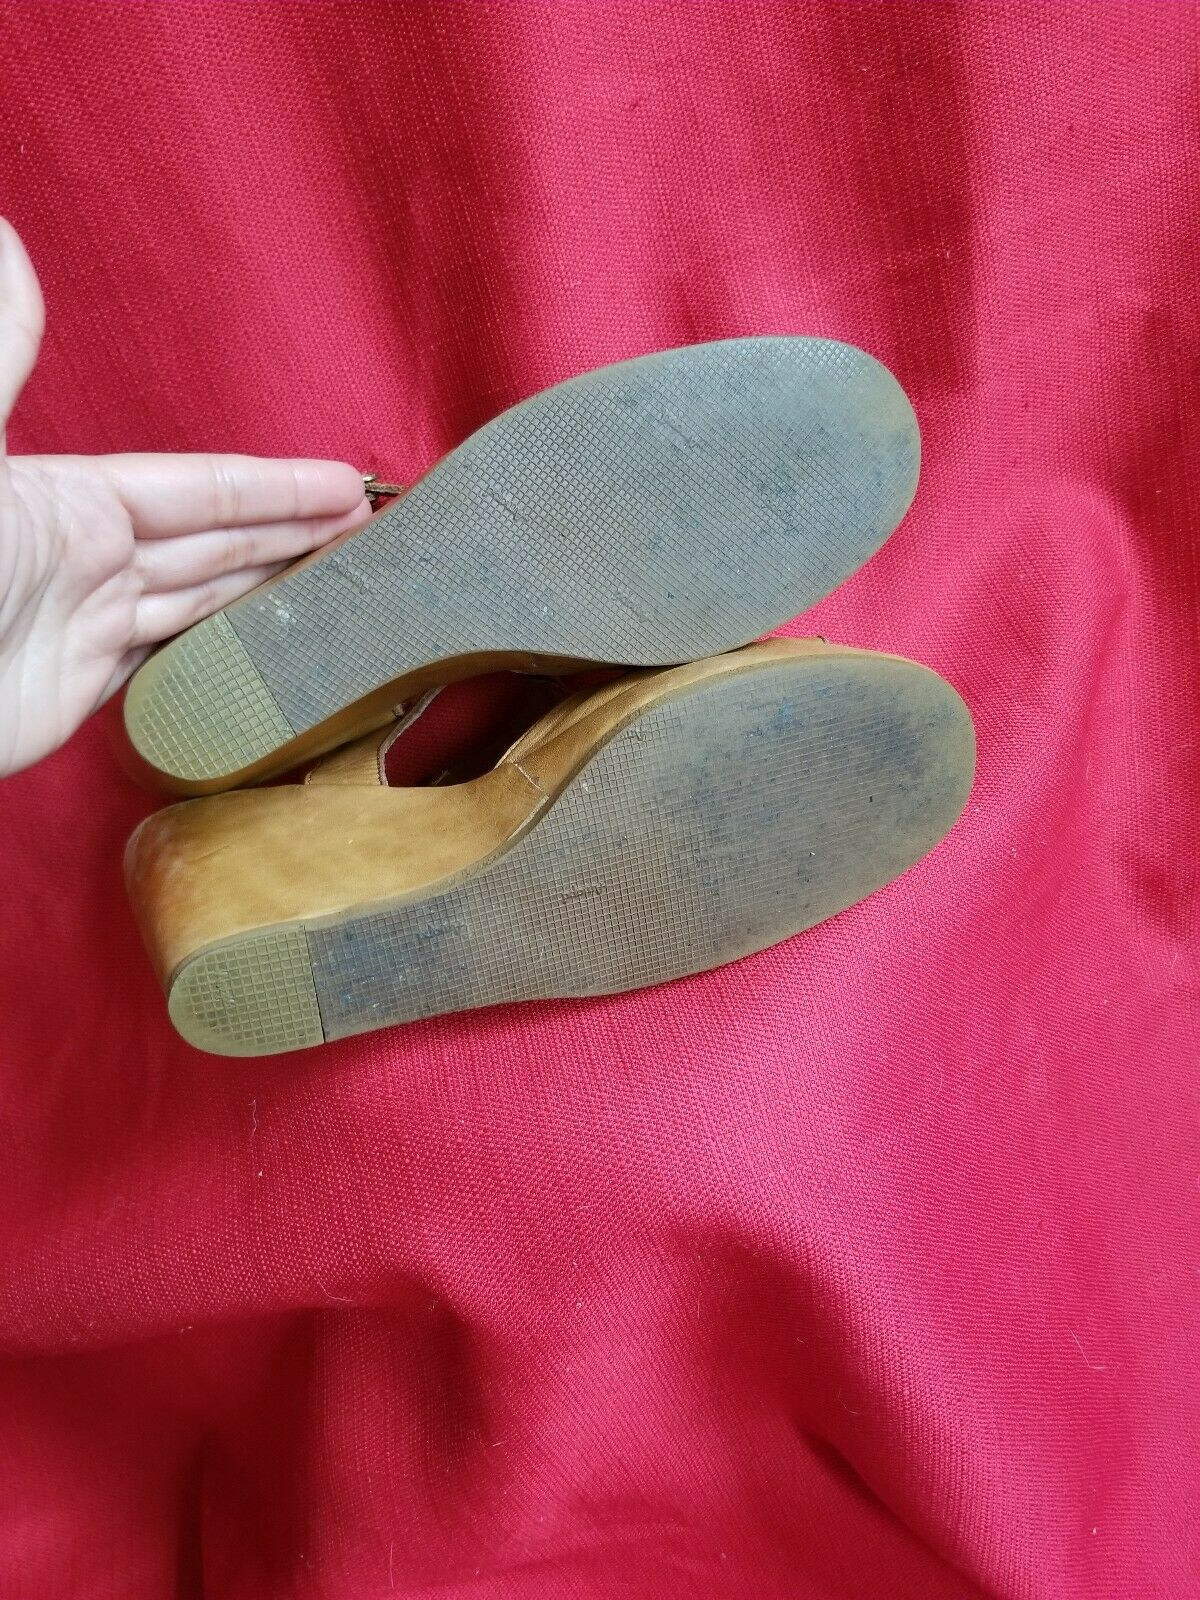 Vtg 1970s does 40s Leather Wedge Sandals Size 7.5… - image 10